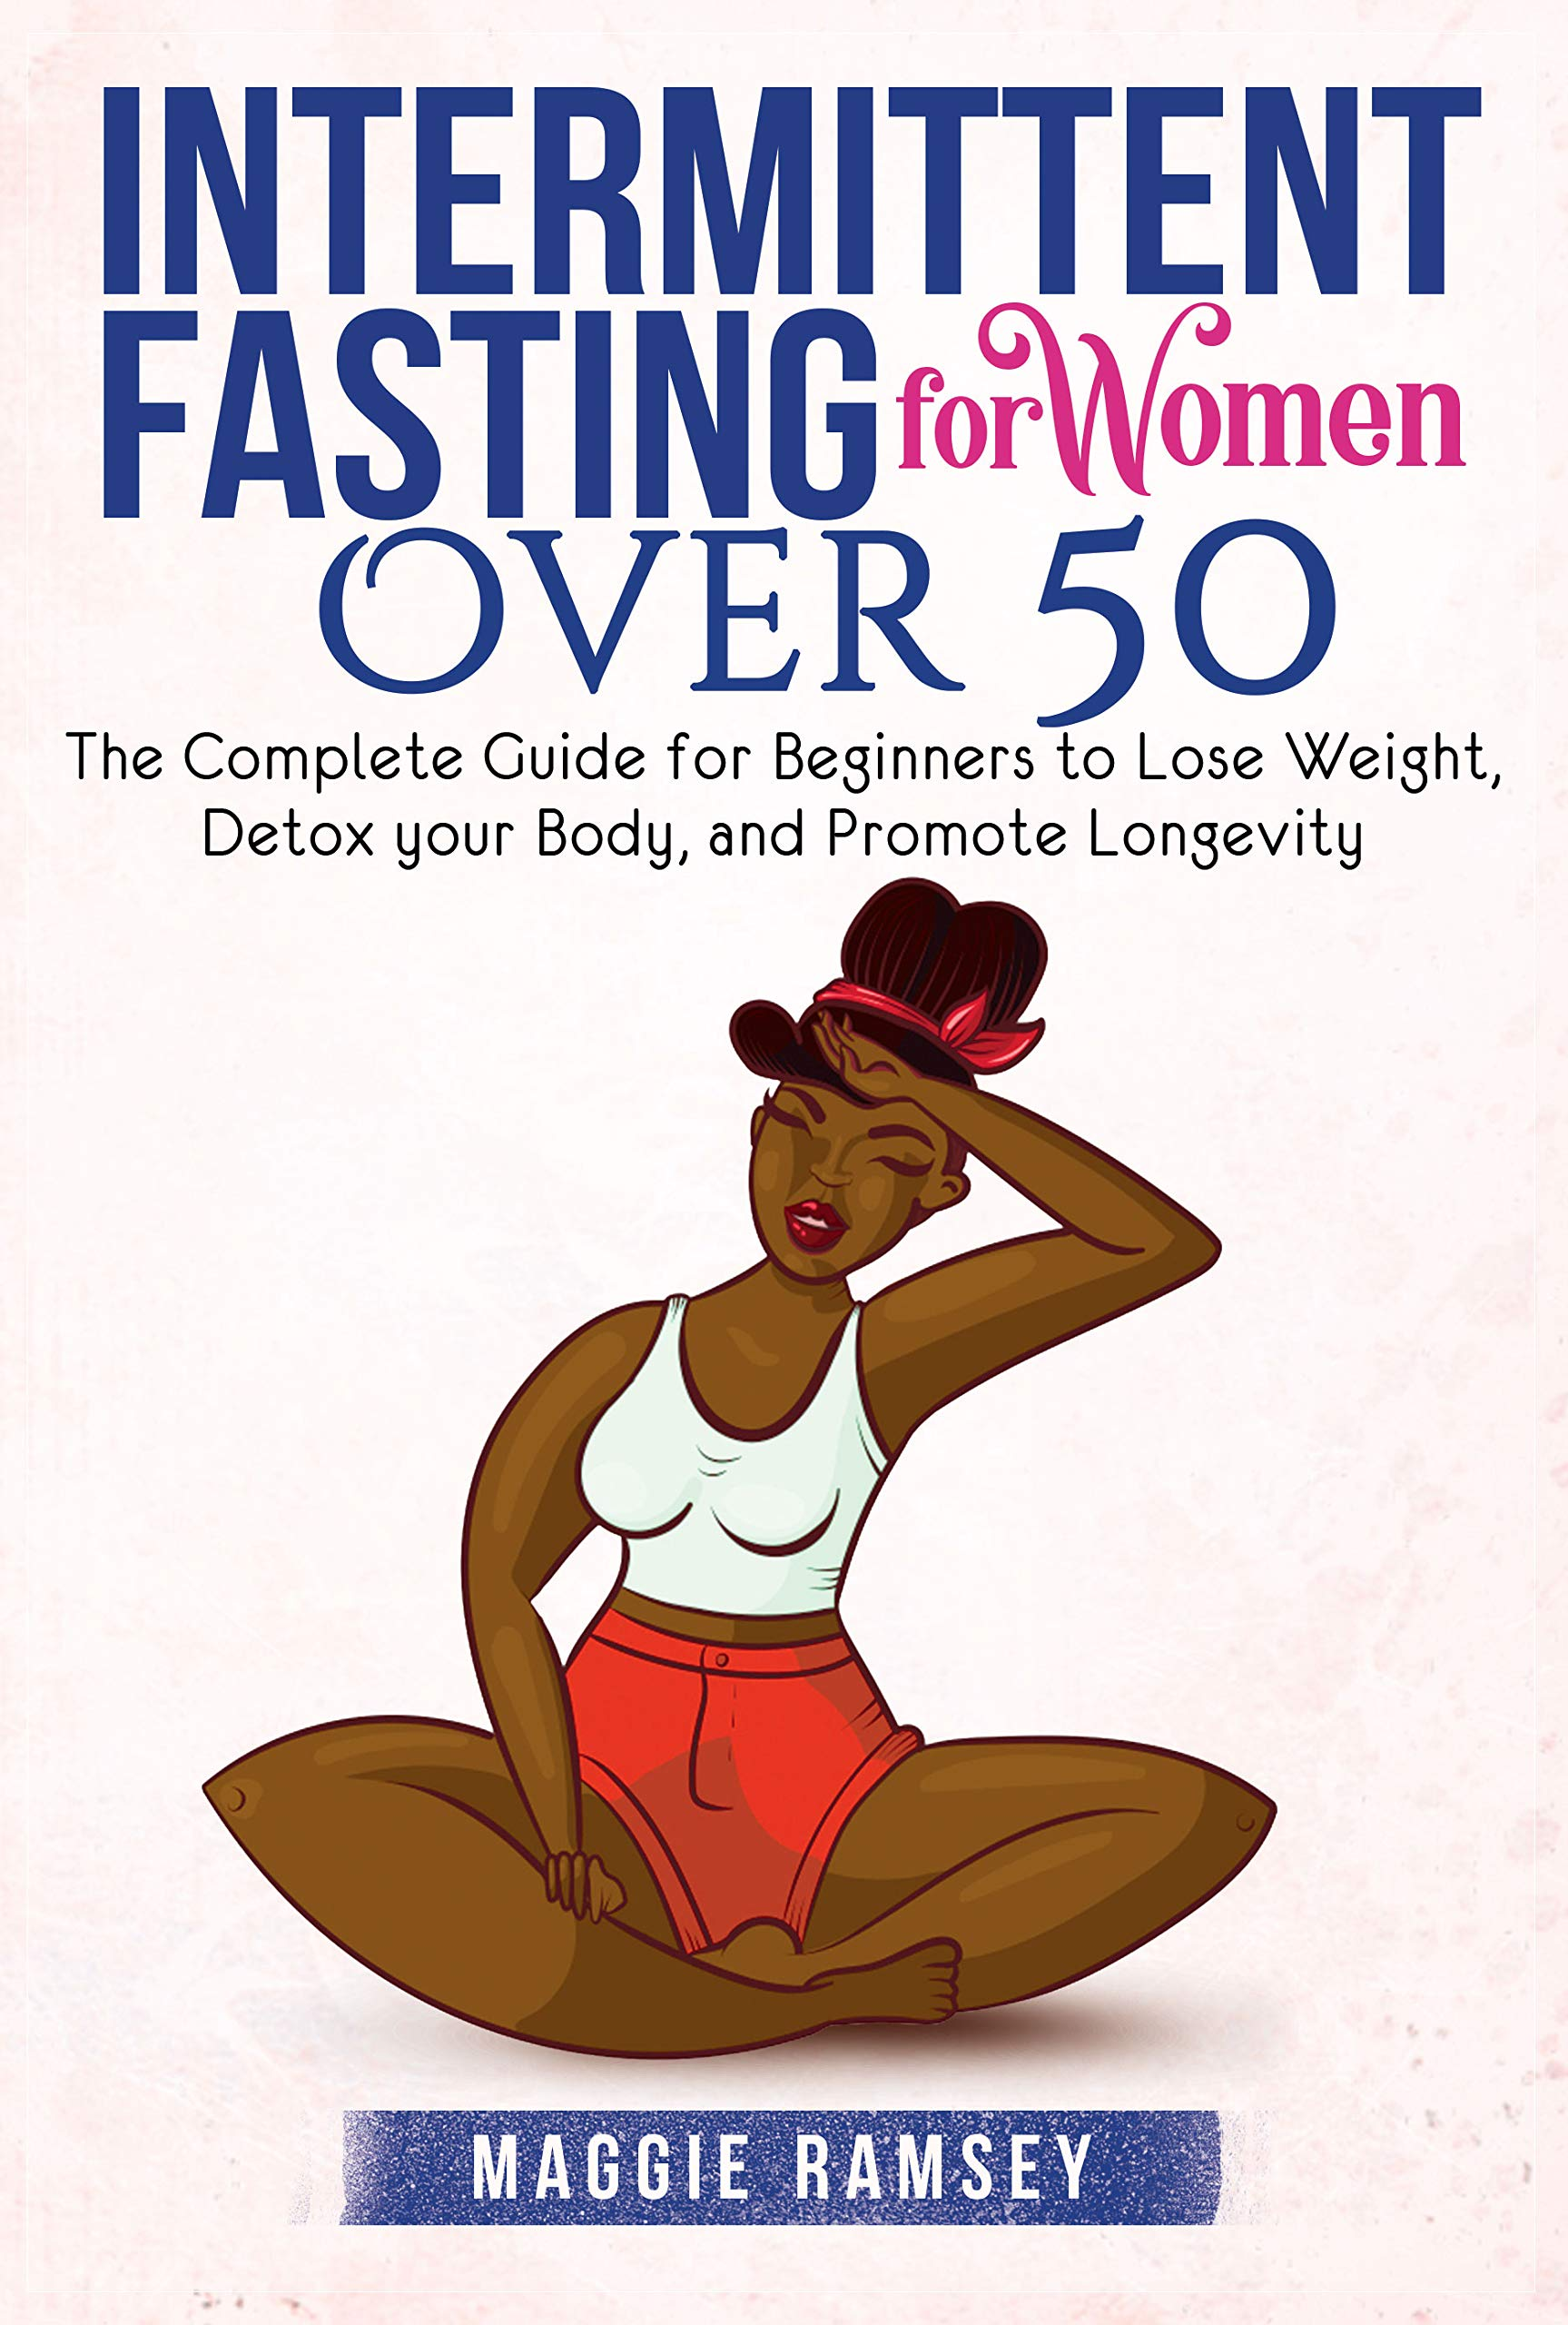 Image OfIntermittent Fasting For Women Over 50: The Complete Guide For Beginners To Lose Weight, Detox Your Body, And Promote Long...